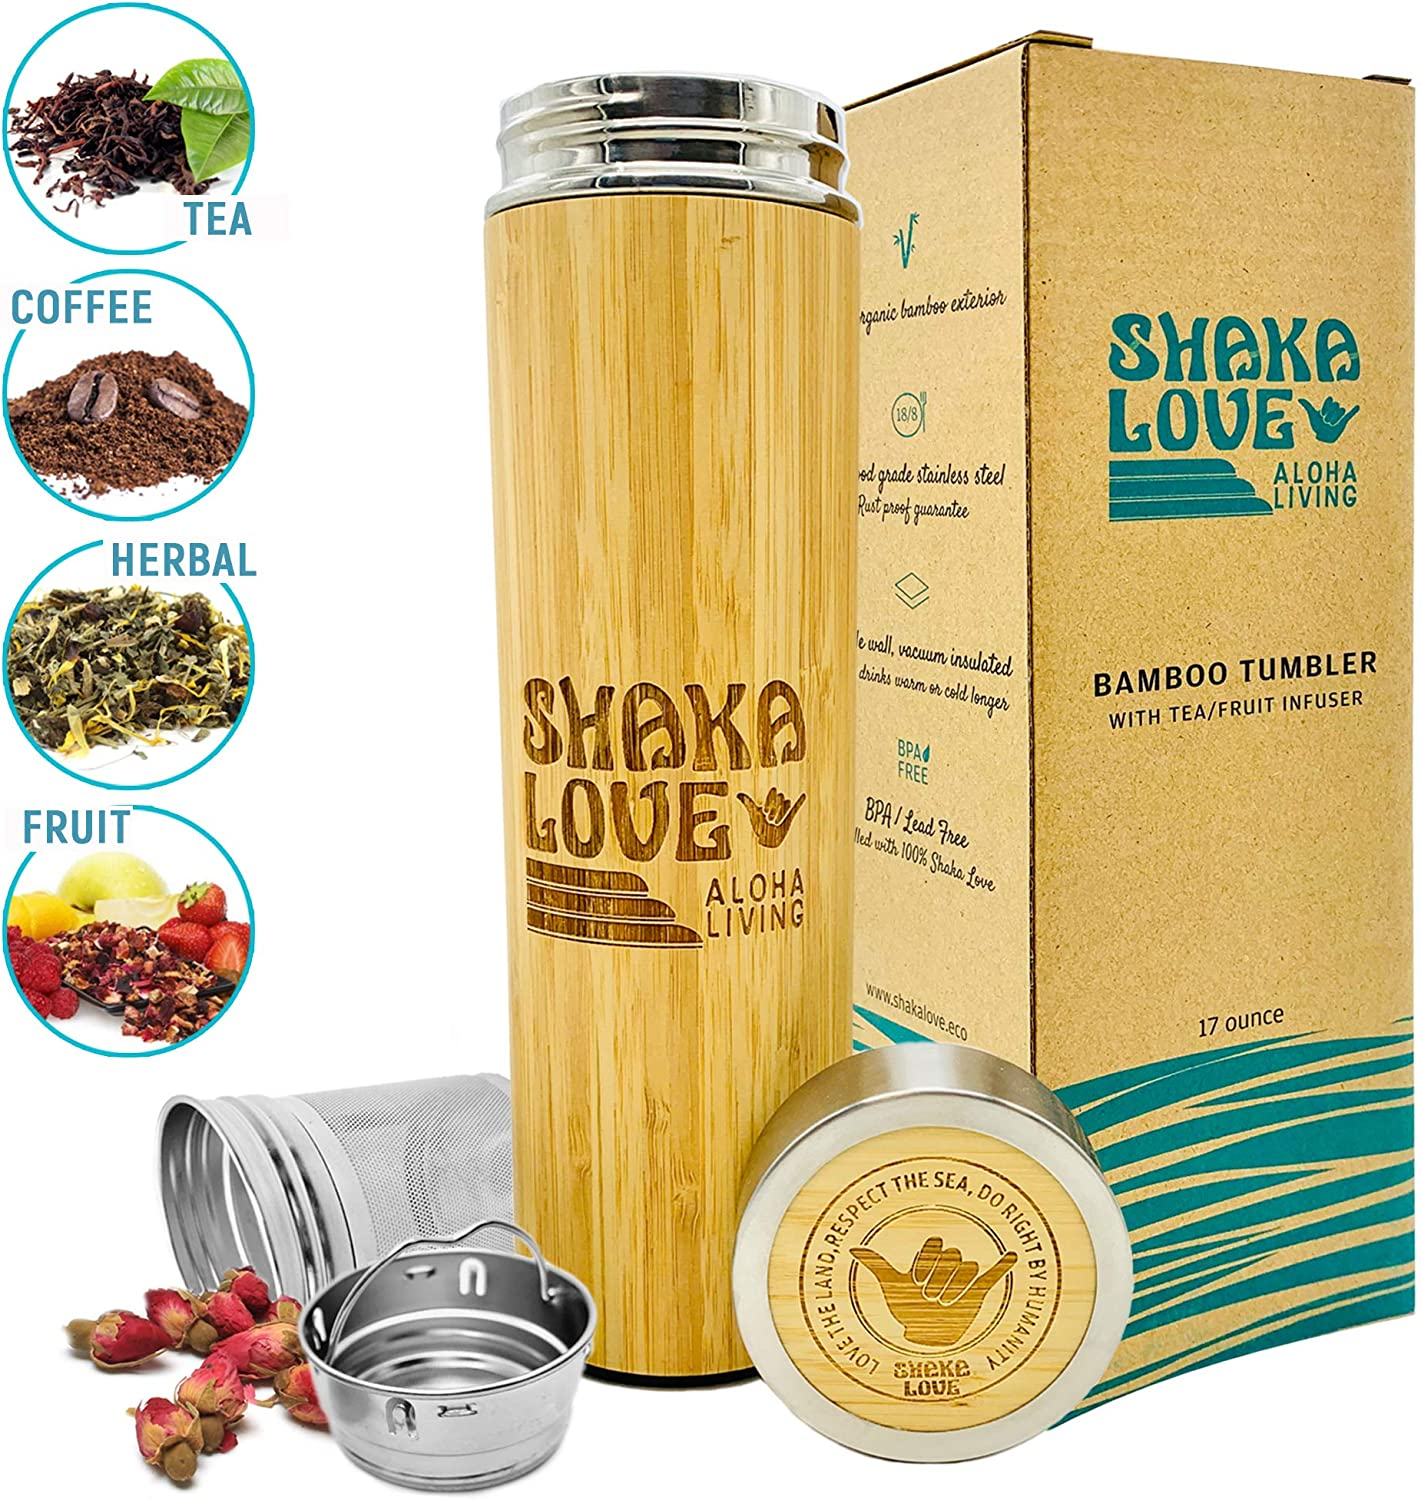 SHAKA LOVE Bamboo Tumbler with Tea Infuser & Coffee Brewer- 17 oz Stainless Steel Thermos Mug for Hot & Cold Brew Coffee, Vacuum Insulated Bottle Flask with Filter for Loose Leaf Tea & Fruit Infused